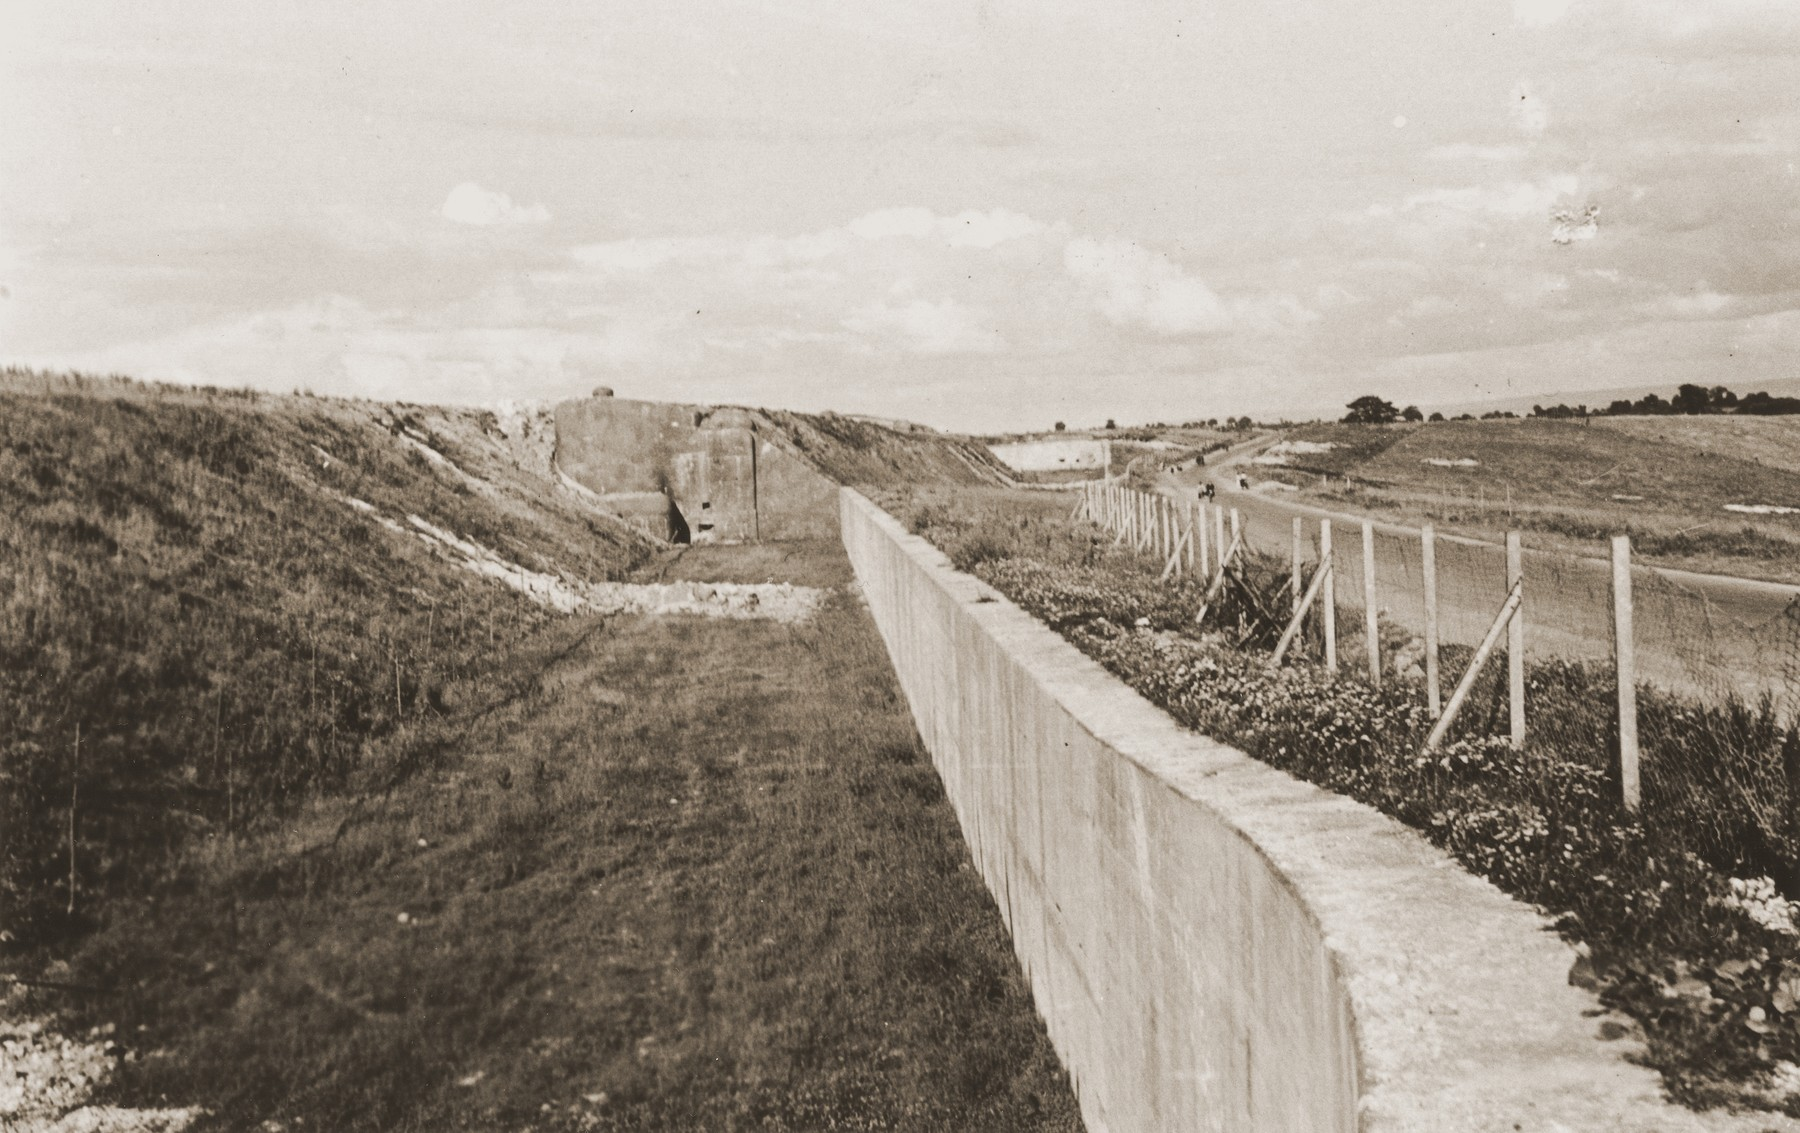 View of a section of the Maginot Line after the defeat of France.